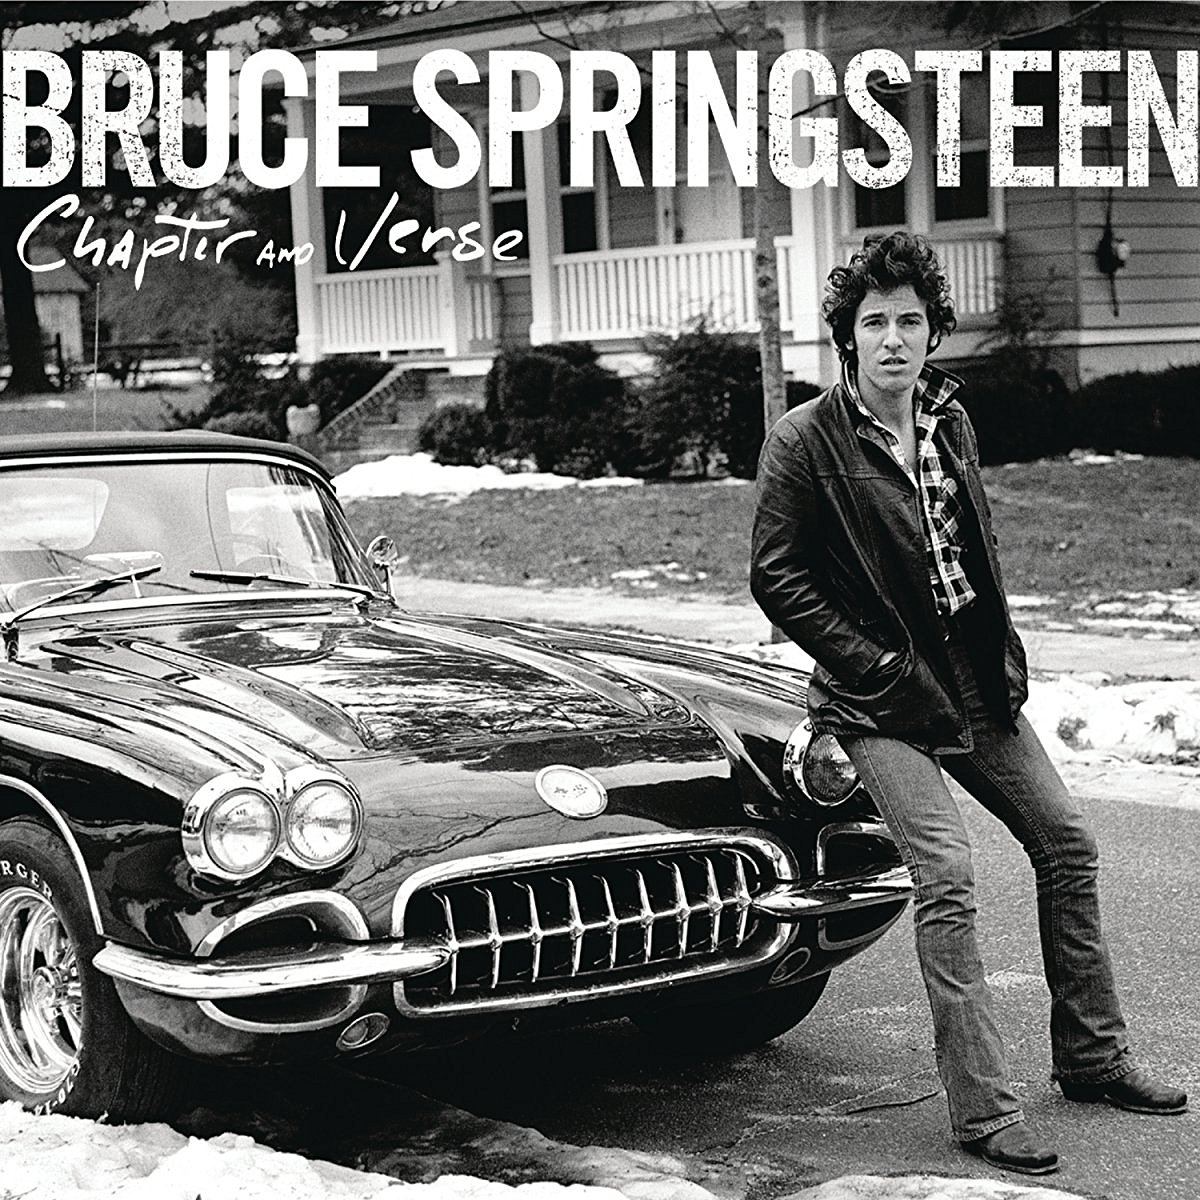 catalog 10 16 Springsteen ChapterVerse